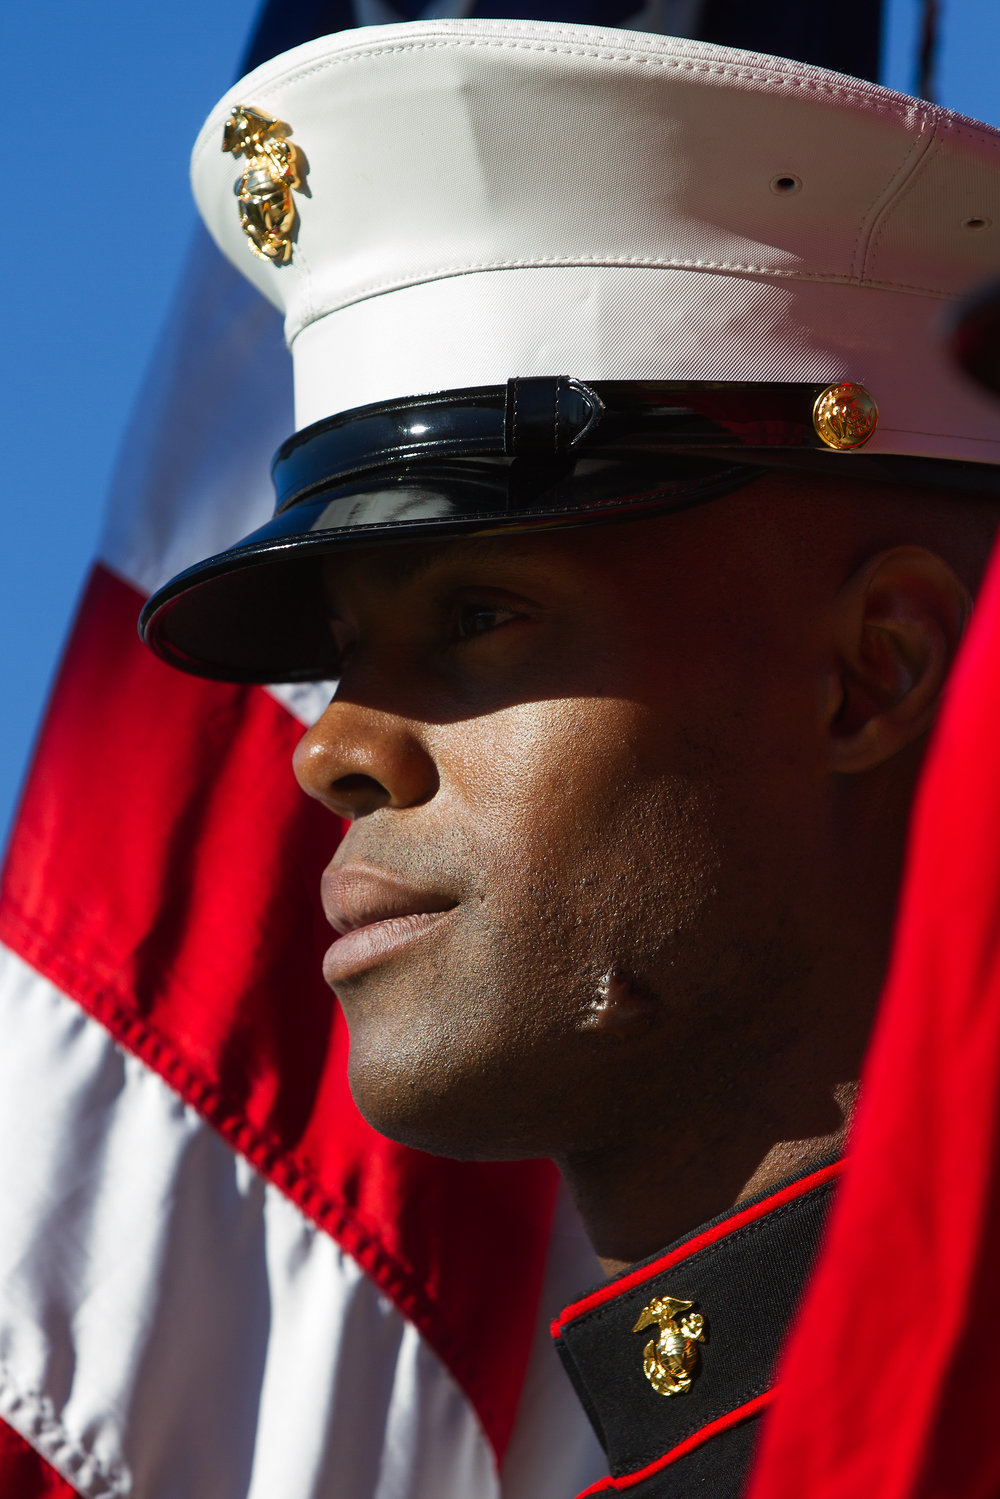 SSgt. Austin Leon, of Marine Corps Reserve Center in Battle Creek, Mich., listens during the Kalamazoo County Veterans Day Ceremony at Rose Park Veterans Memorial in Kalamazoo, Mich., Friday, Nov. 11, 2016. (Bryan Bennett | MLive.com)